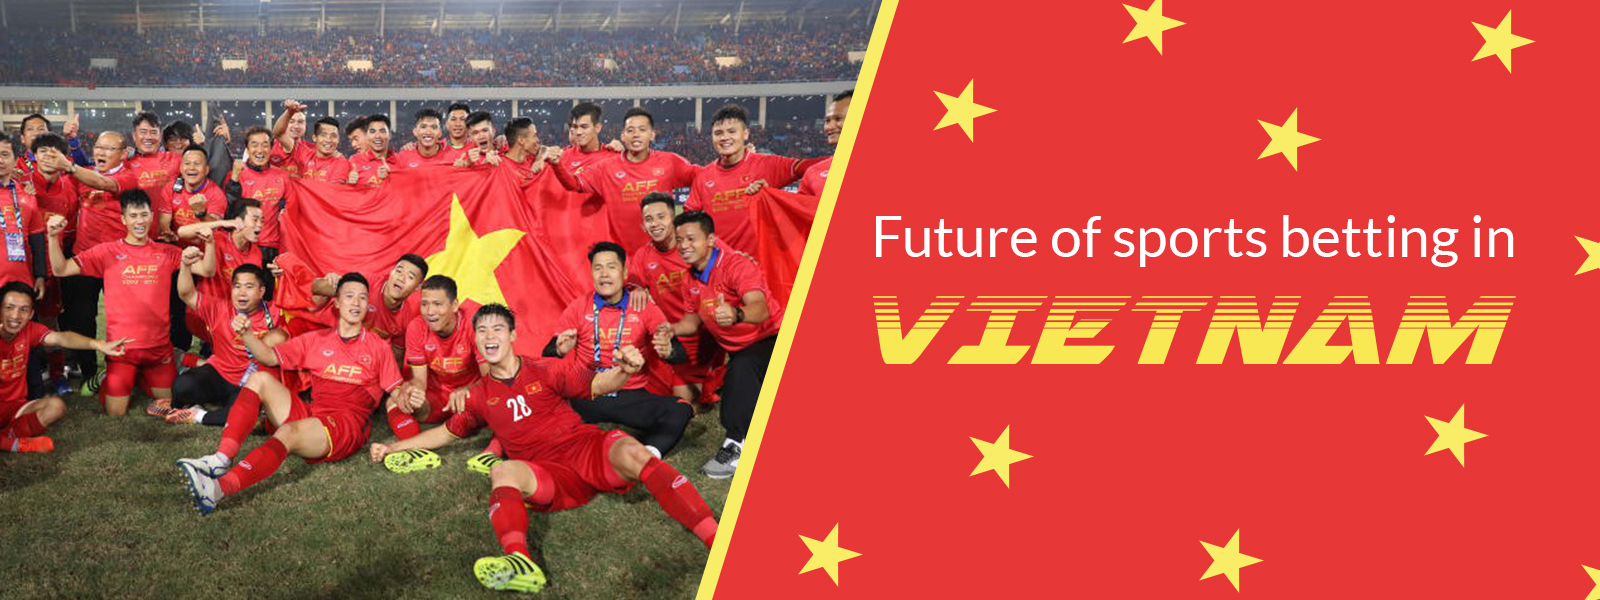 Future Of Sports Betting In Vietnam